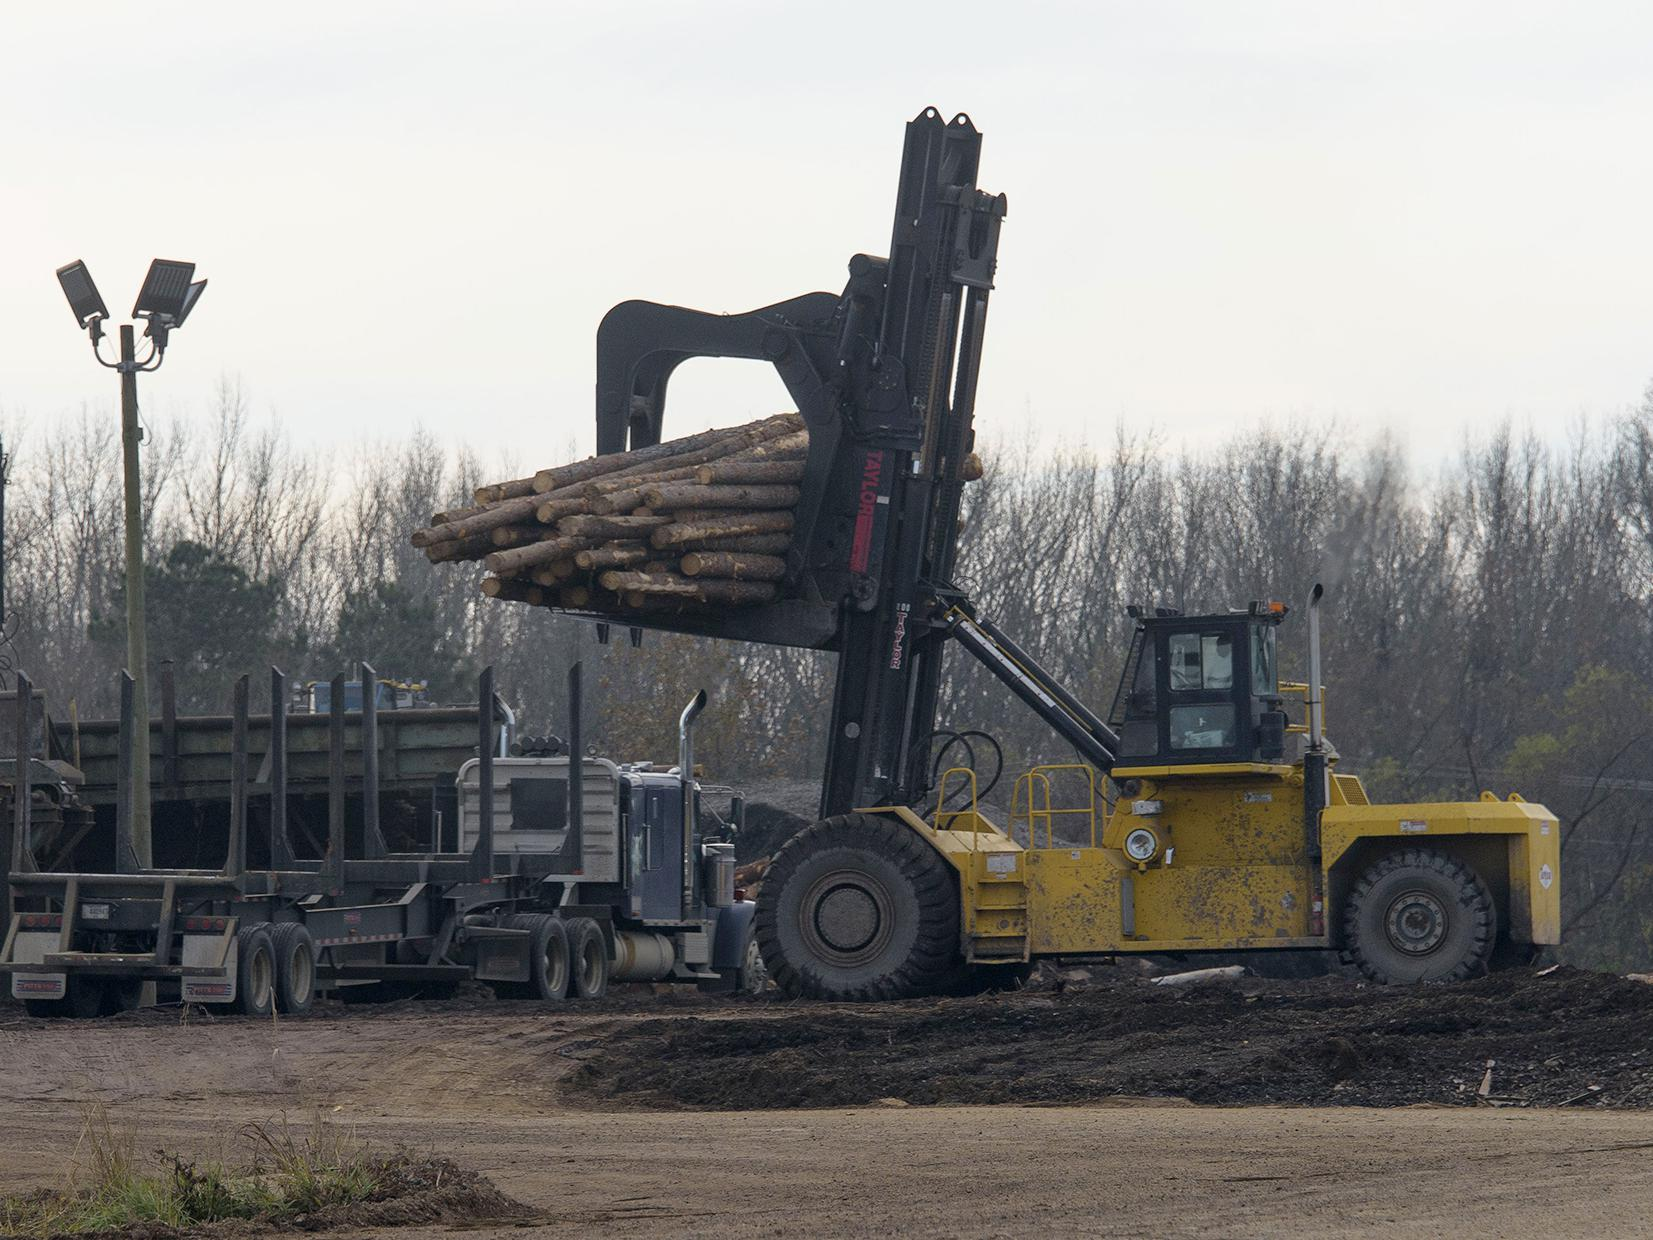 A yellow piece of heavy machinery lifts a load of cut trees off the back of a log truck in a sawmill yard.